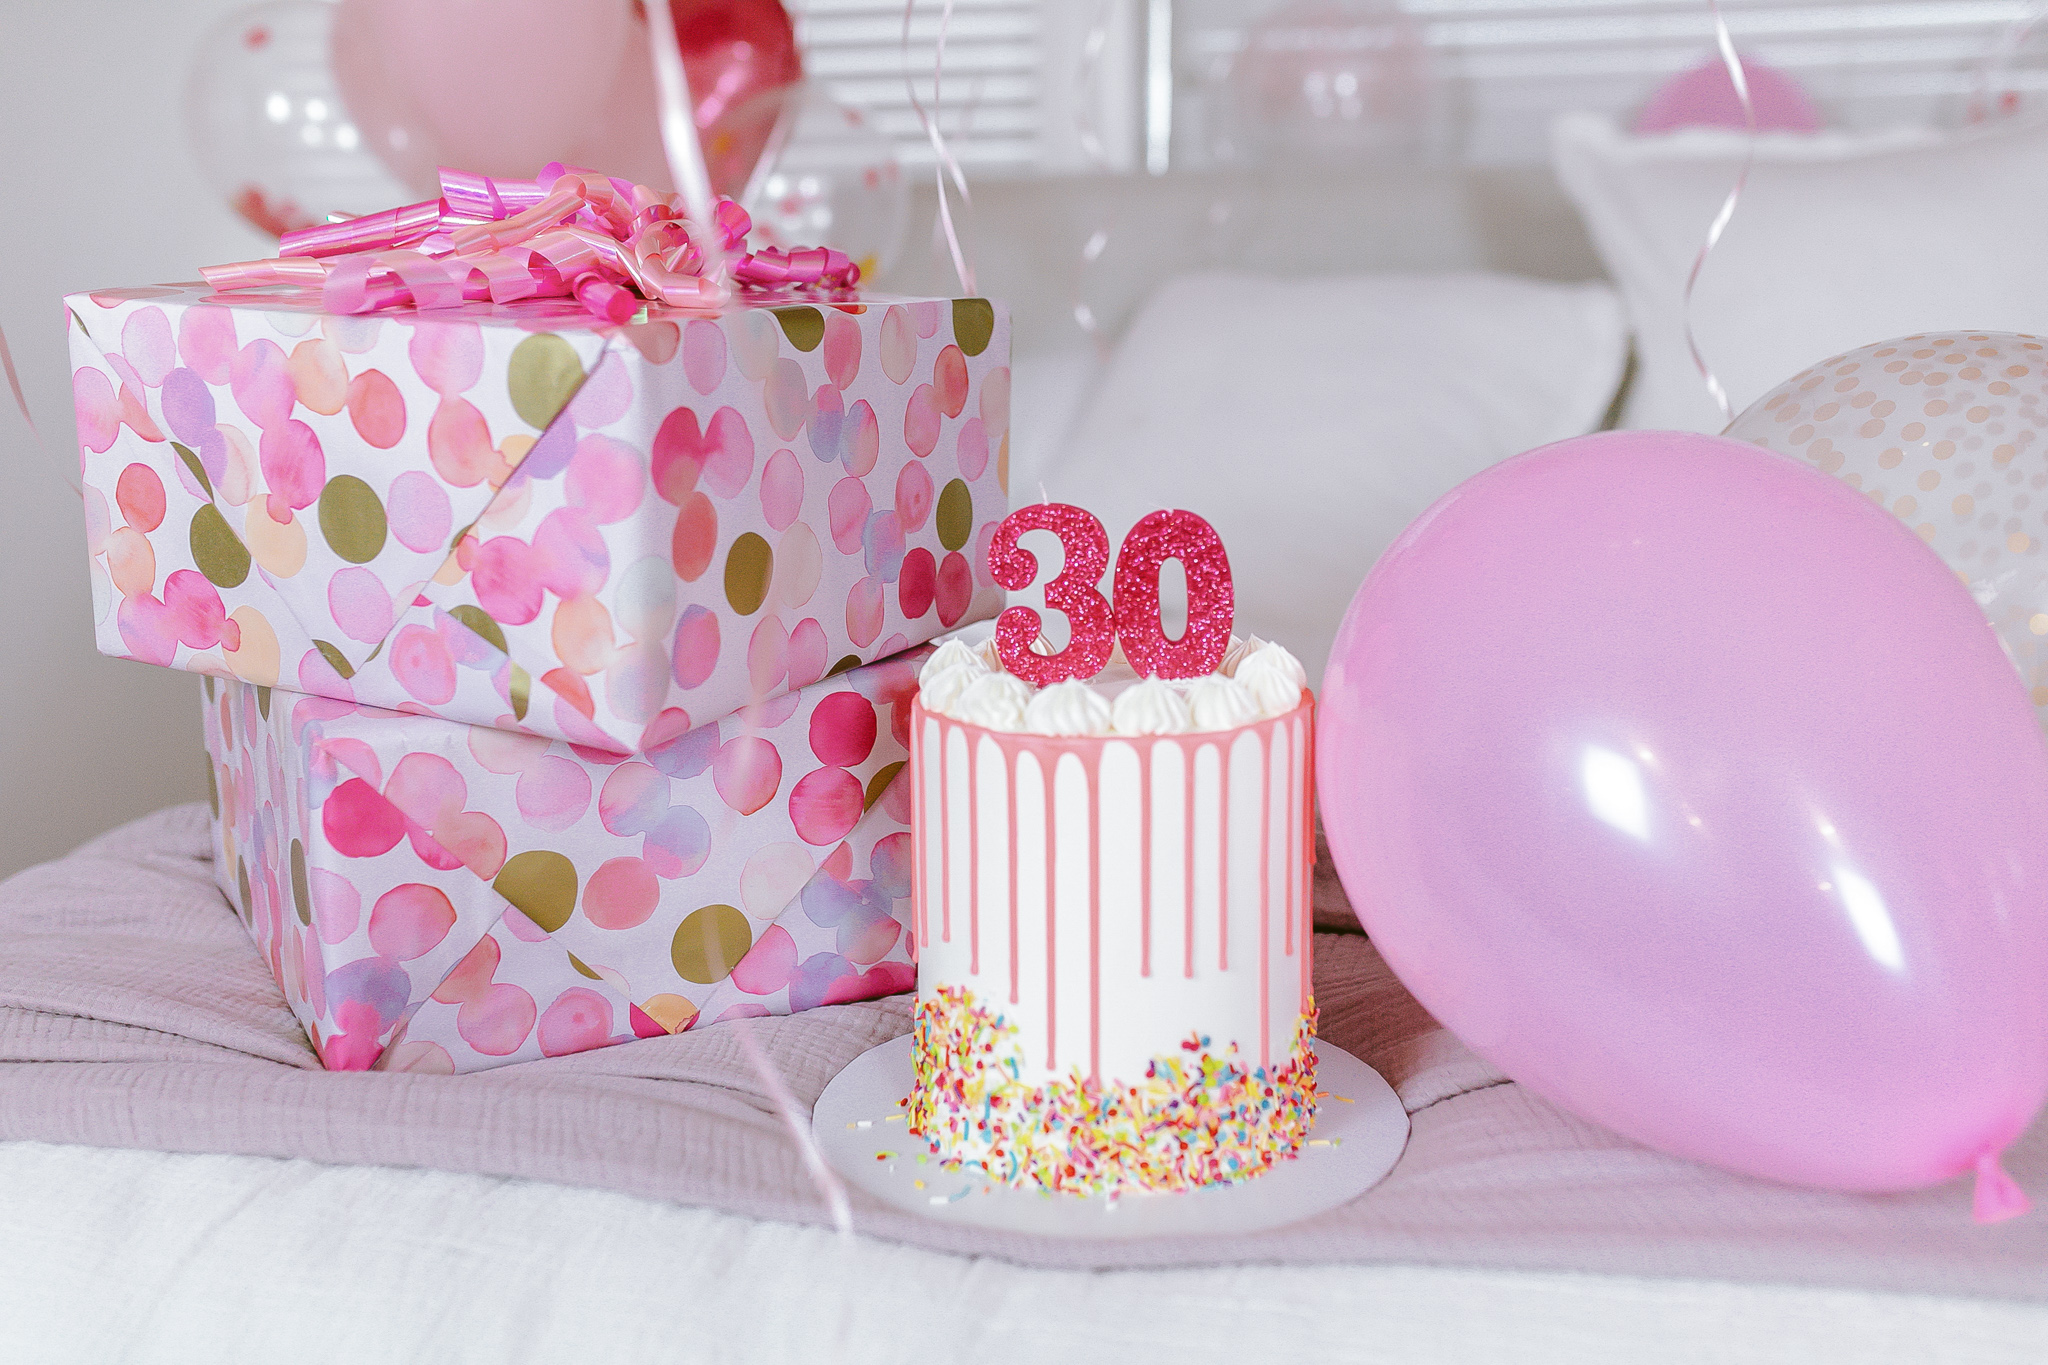 A Double Birthday Celebration With Nature's Way 9